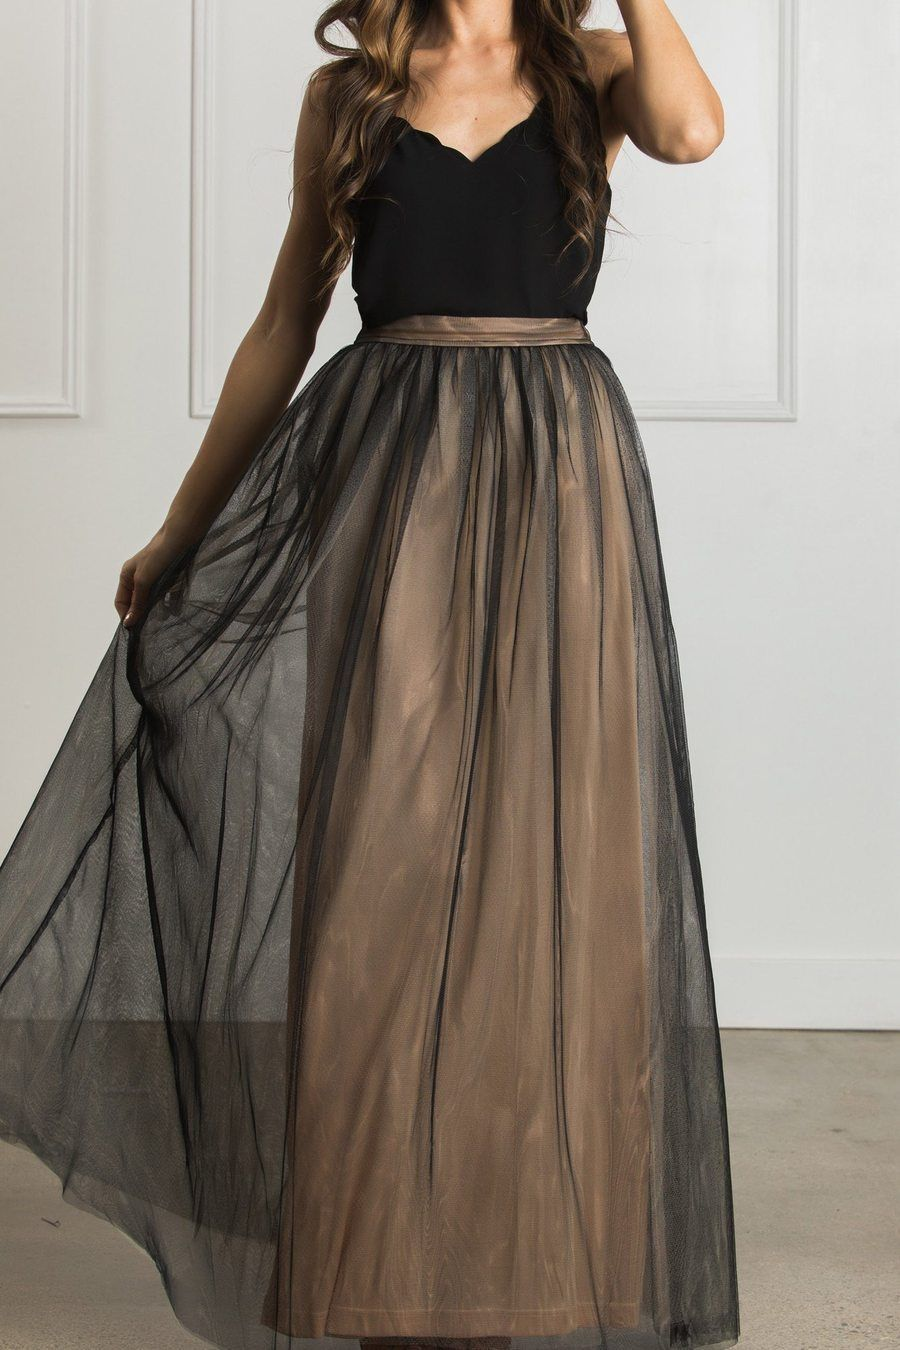 Shop The Anabelle Tulle Maxi Skirt Boutique Clothing Featuring Fresh Feminine And Affordable Styles Tulle Maxi Skirt Maxi Skirt Outfits Ladies Dress Design [ 1350 x 900 Pixel ]